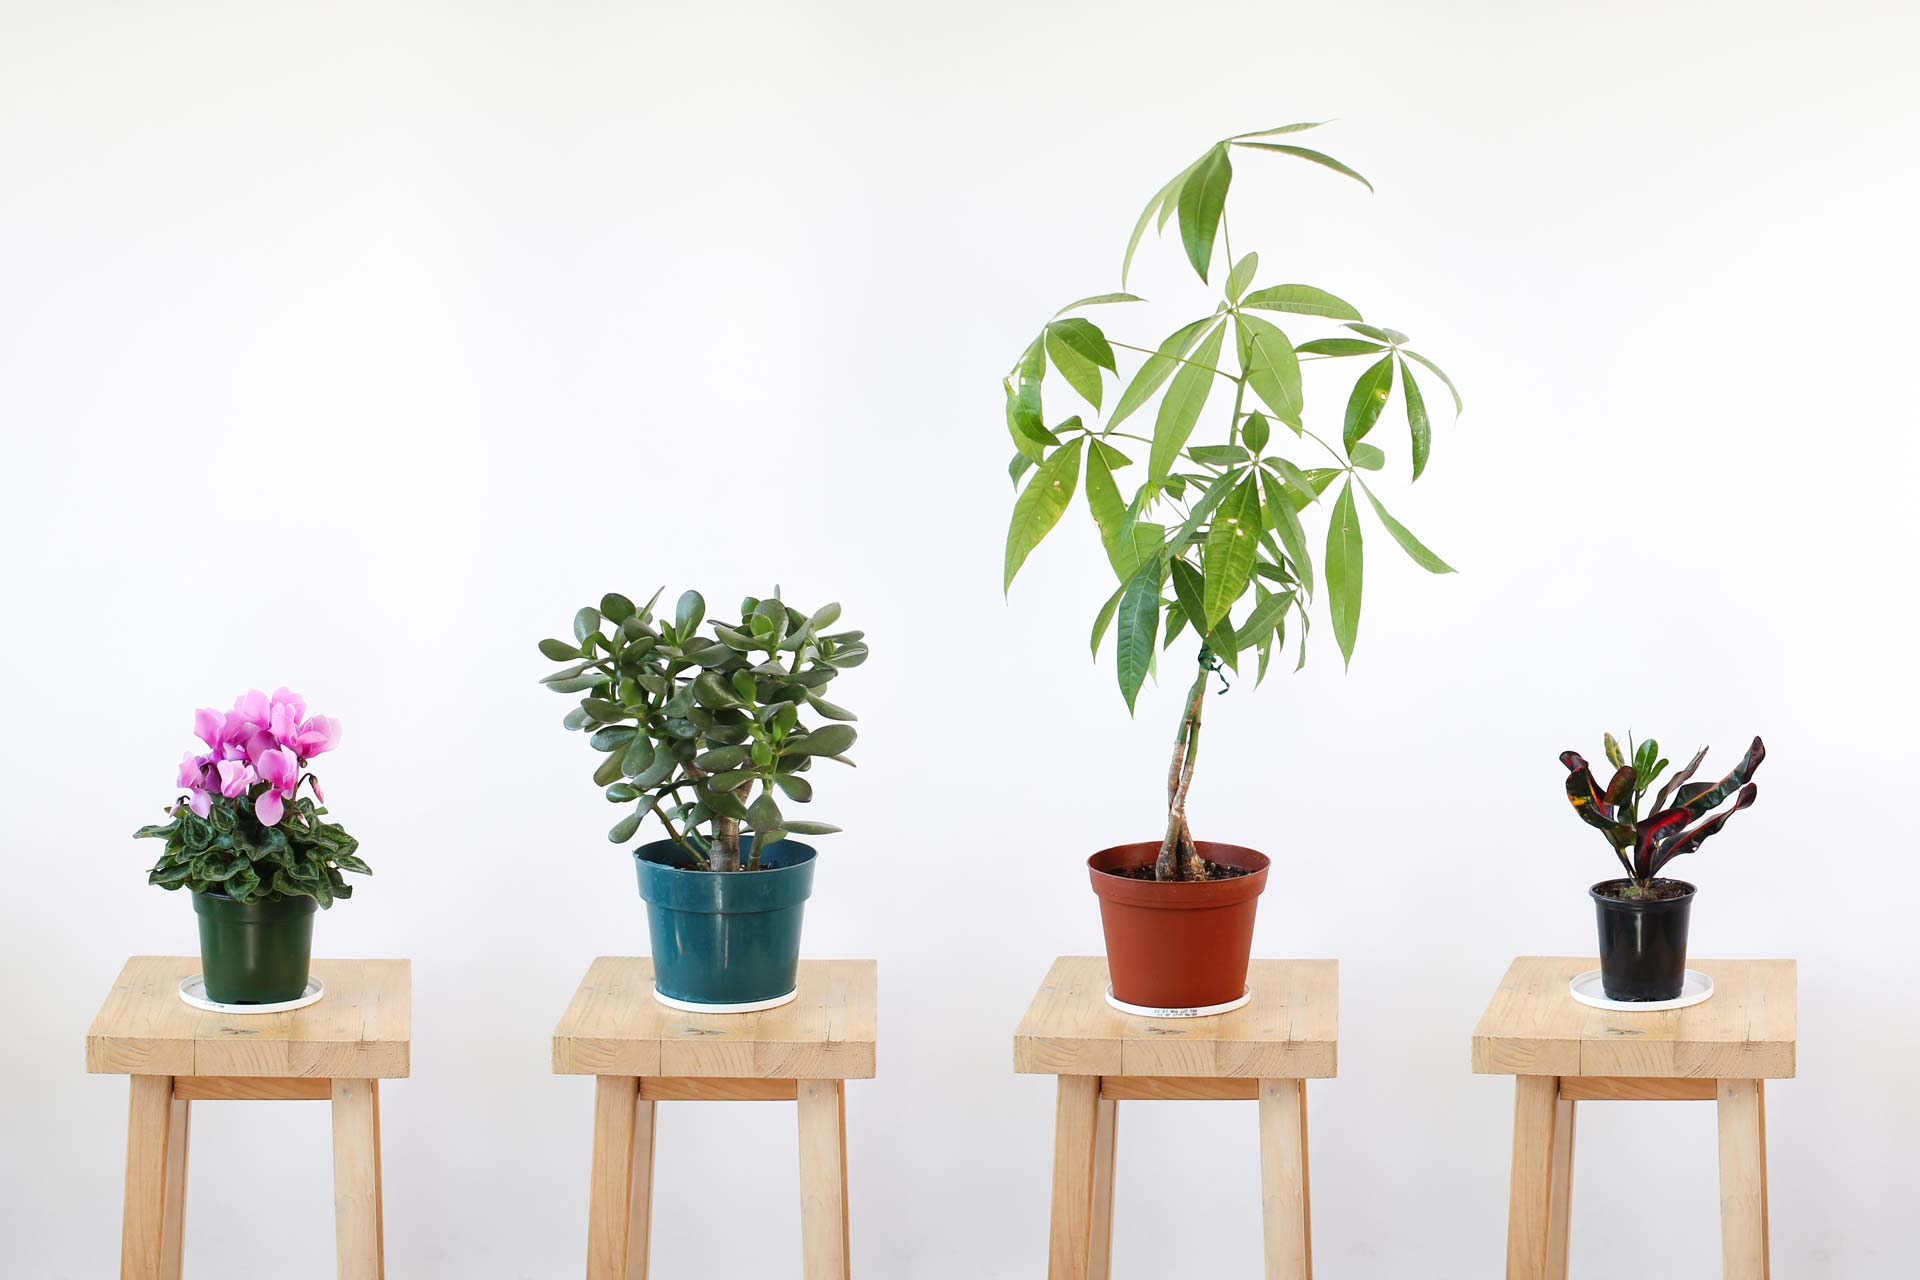 House plants on stools